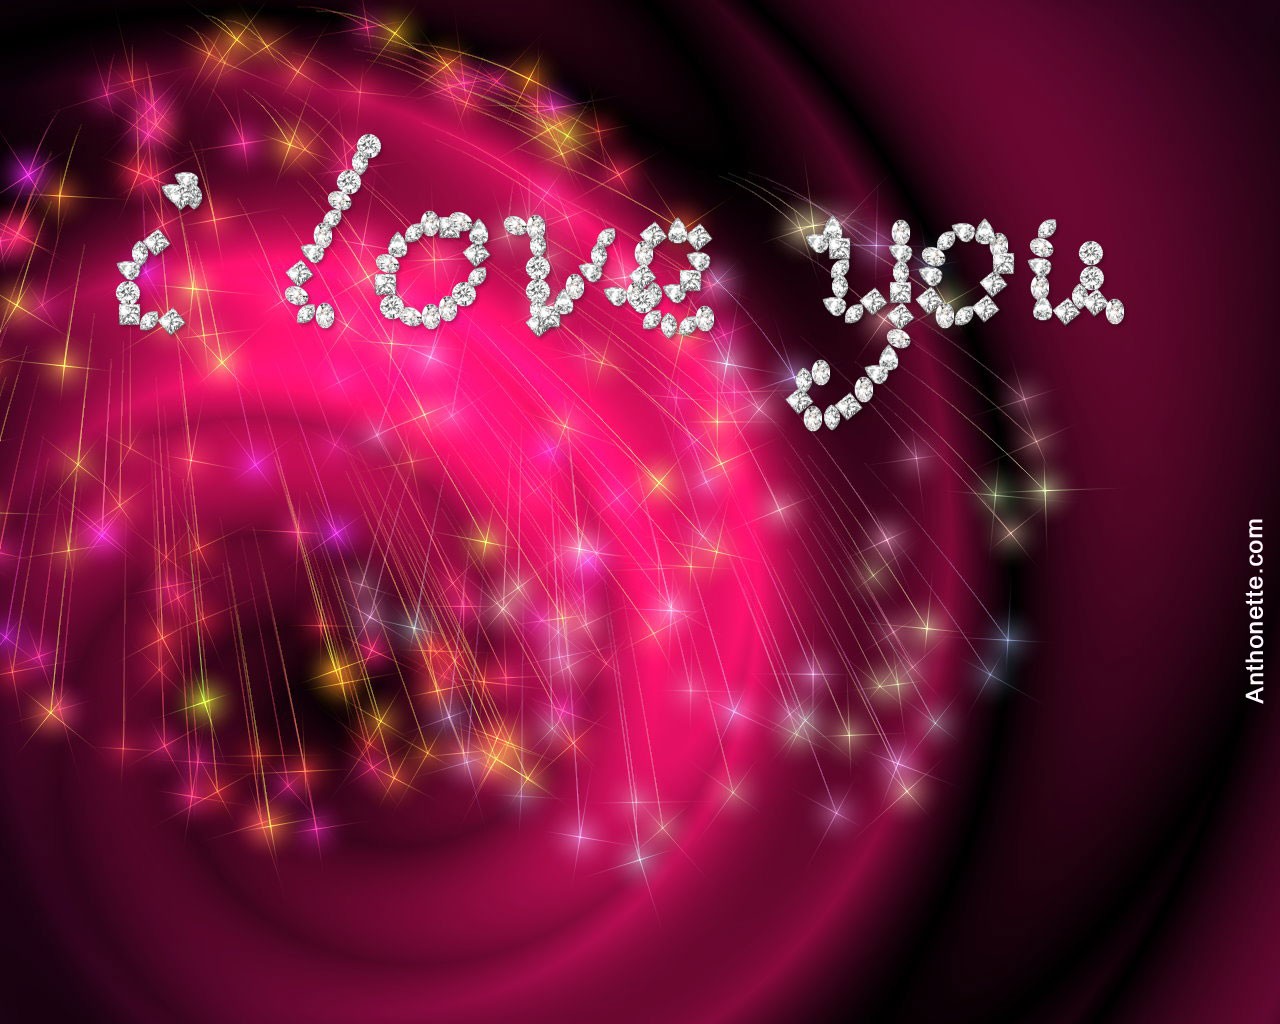 Love You Wallpaper New : Love You Wallpapers HD Nice Wallpapers